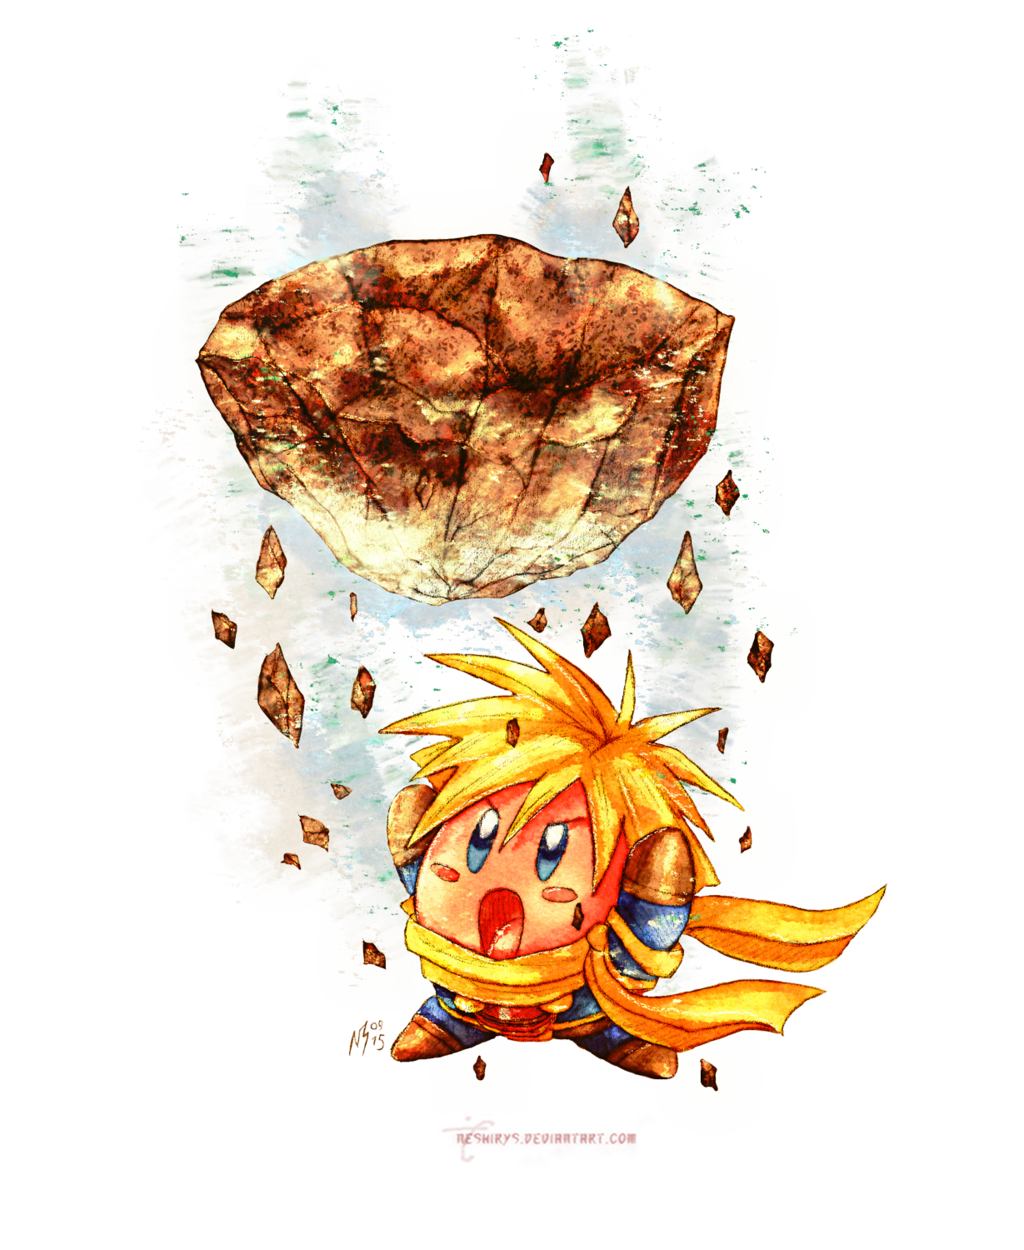 Golden Sun - Kirby Isaac by neshirys.deviantart.com on @DeviantArt